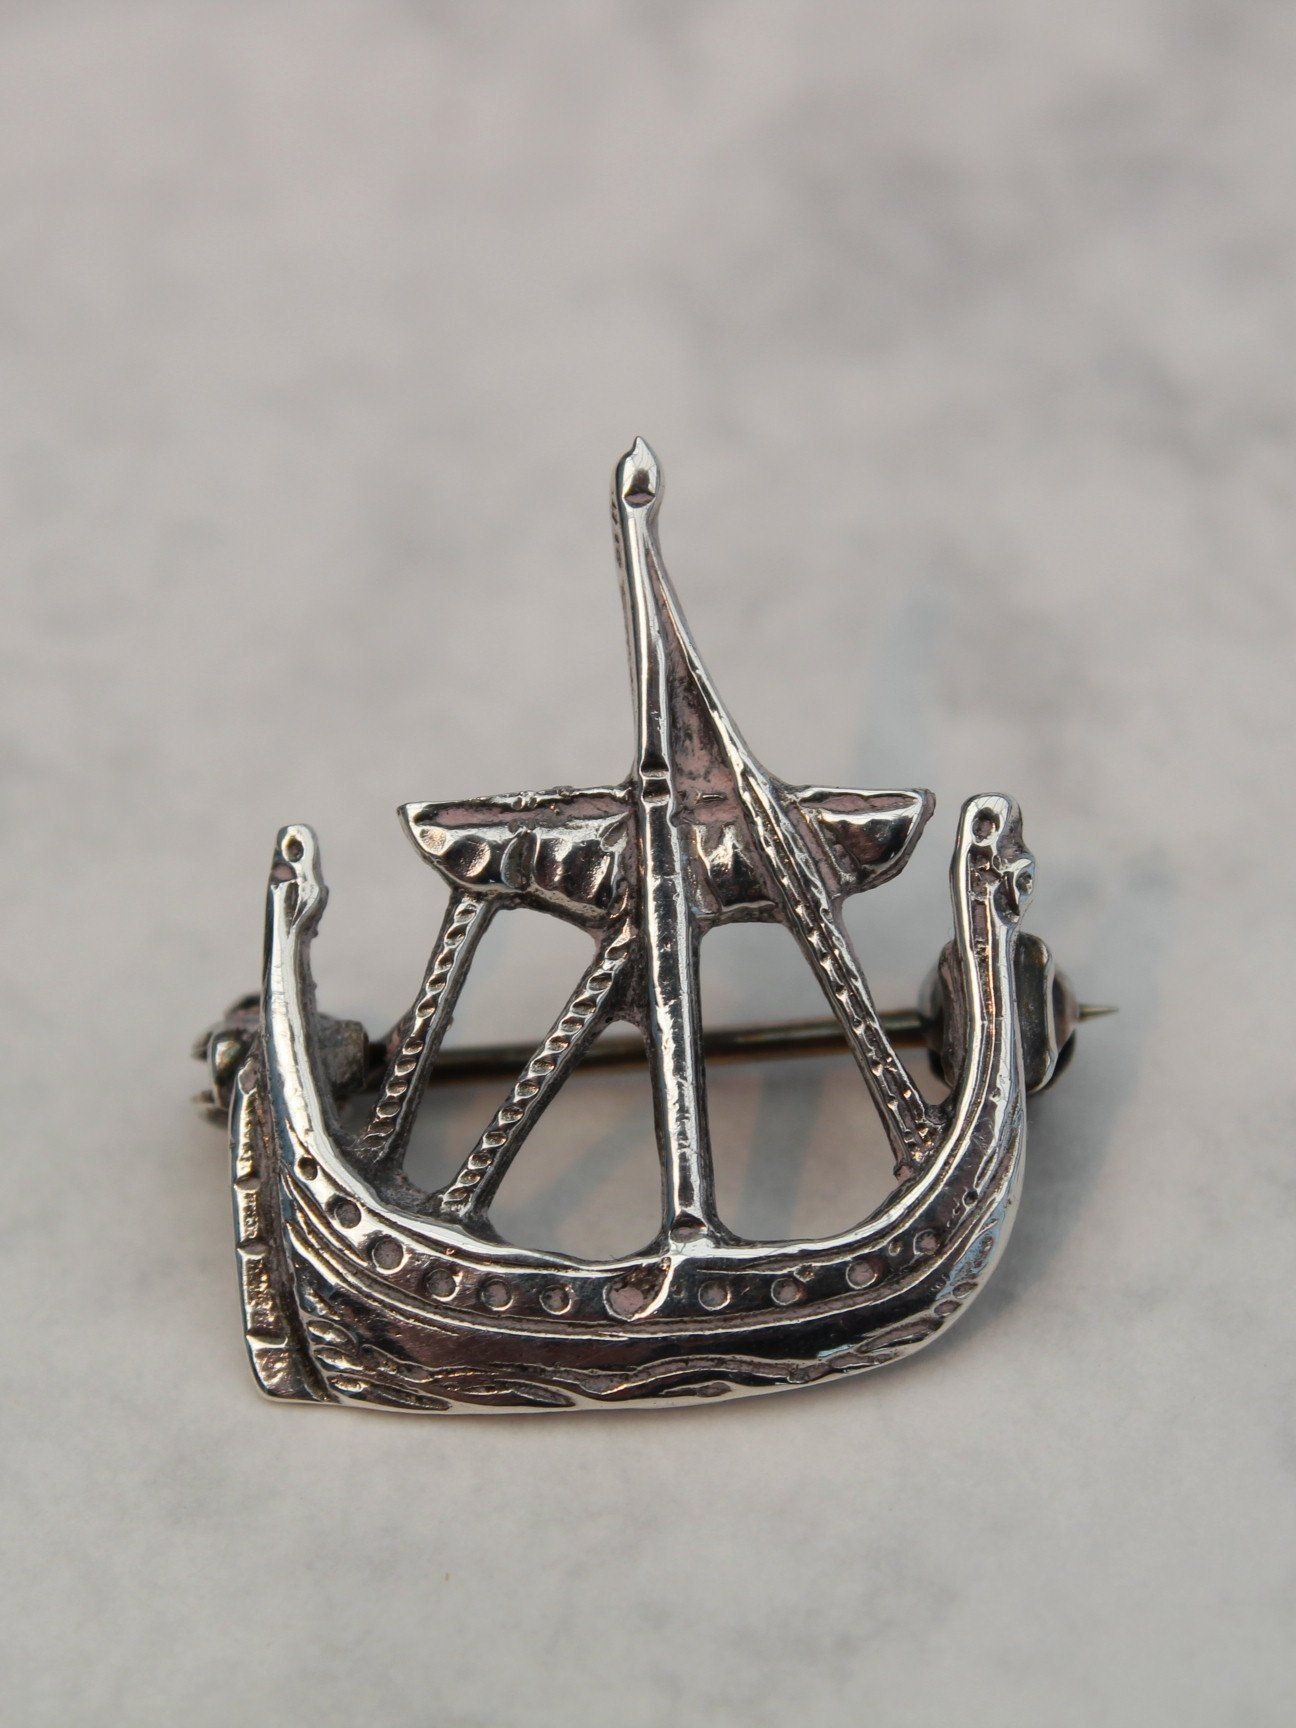 Vintage Silver Viking ship brooch/badge in the style of